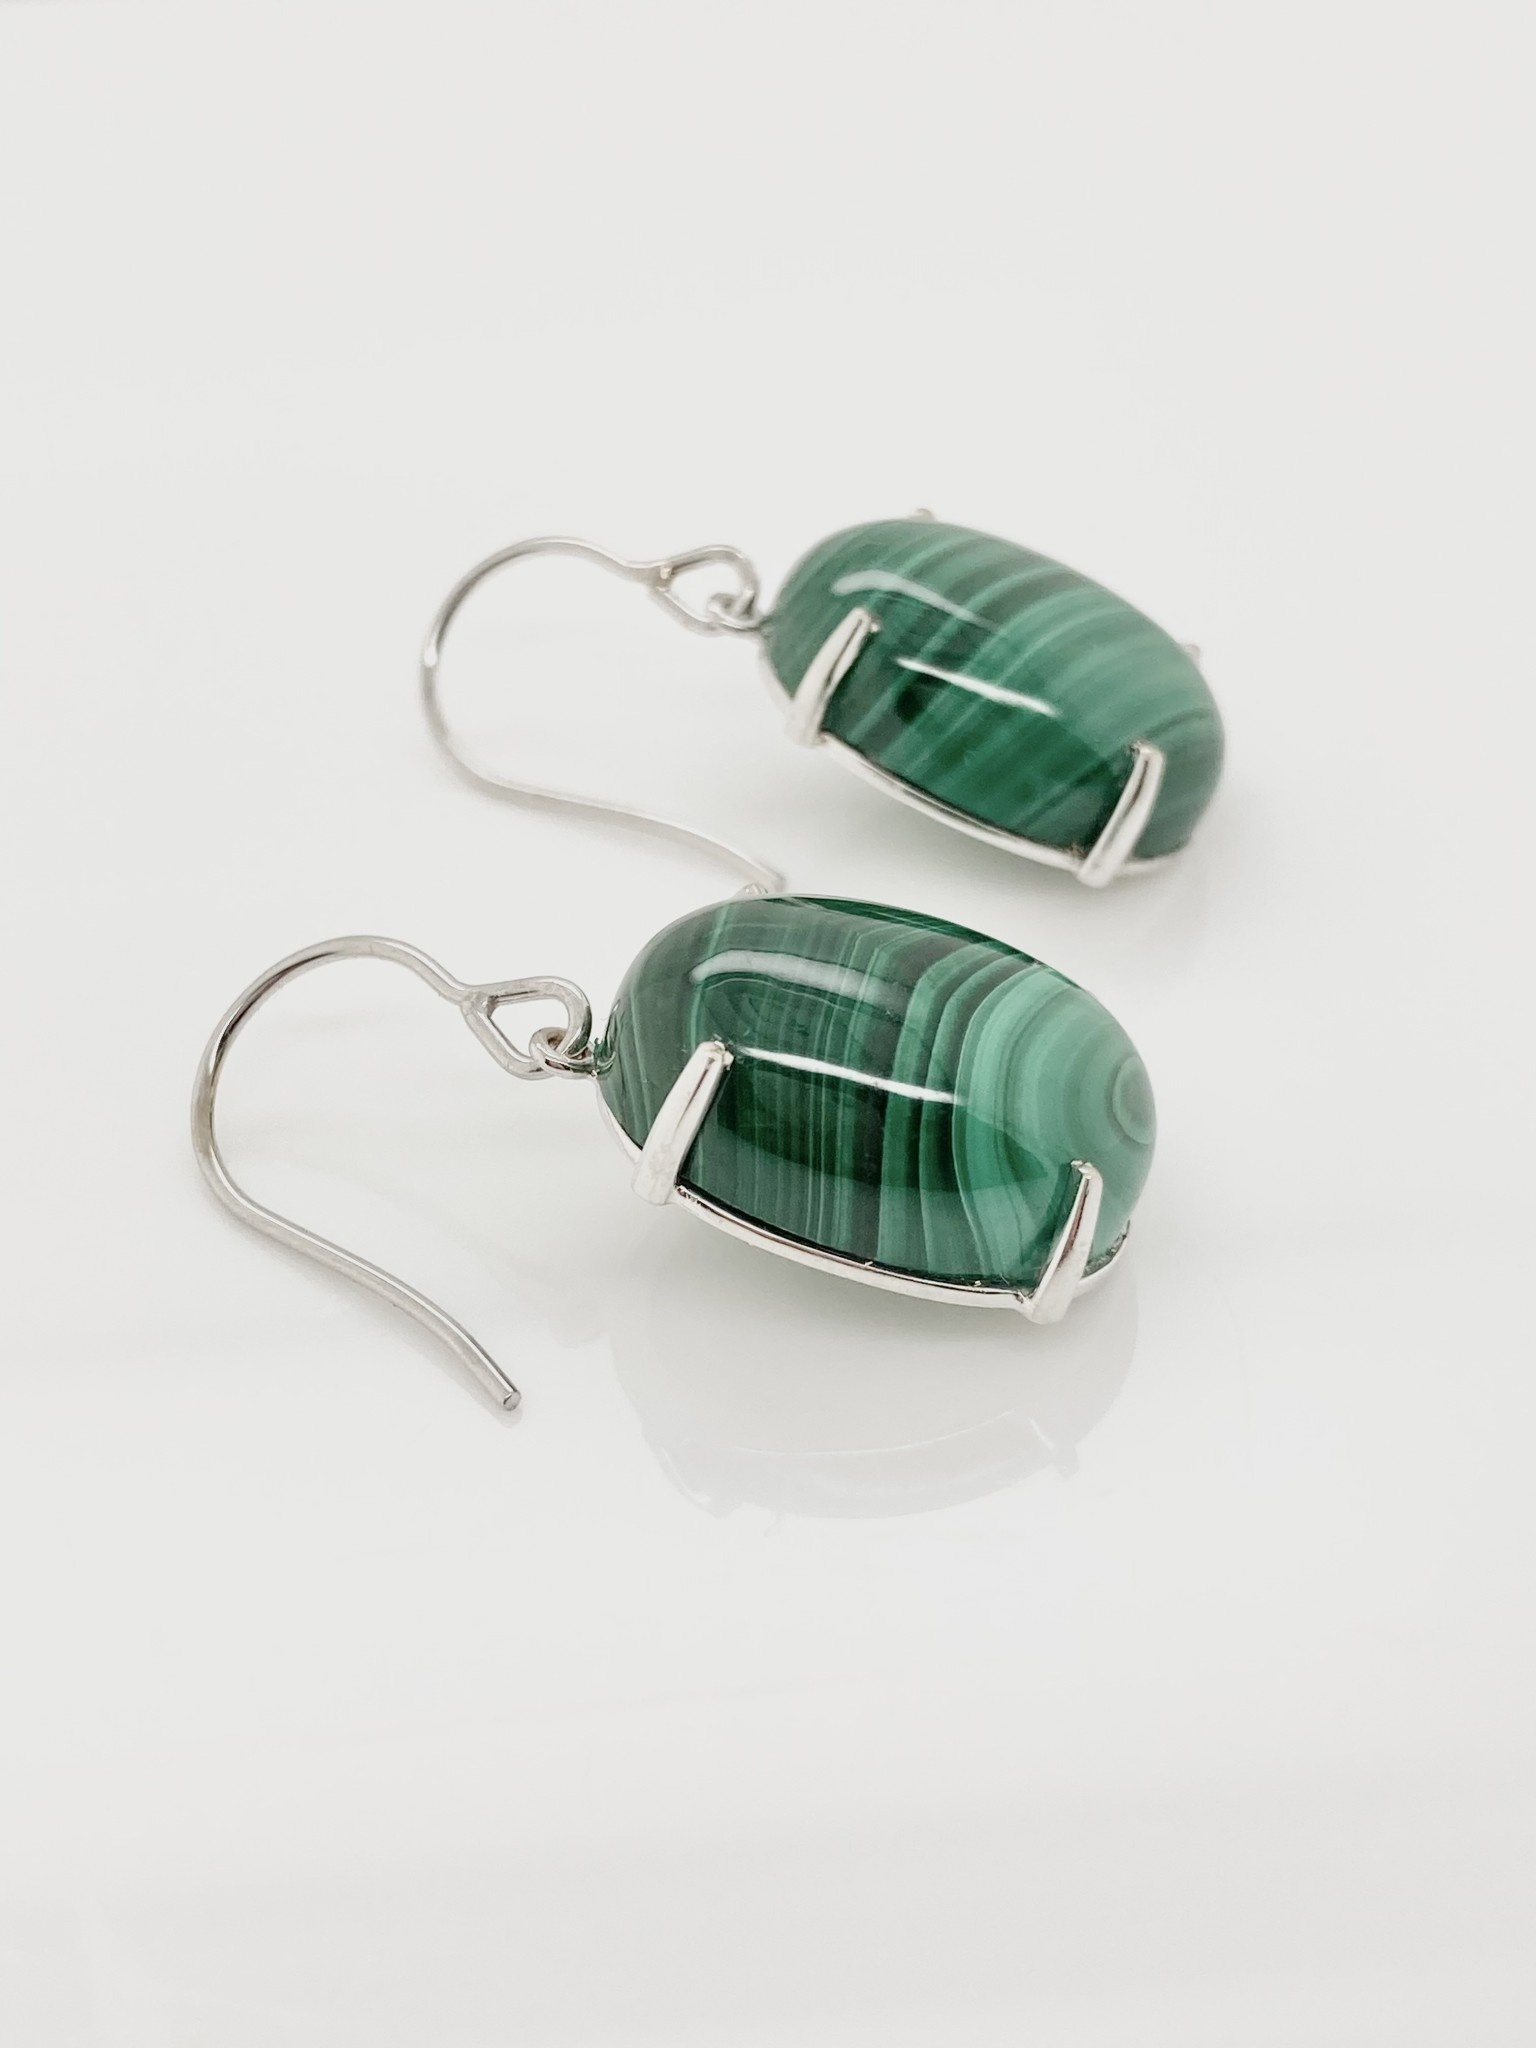 14kt White Gold & Malachite drop earrings